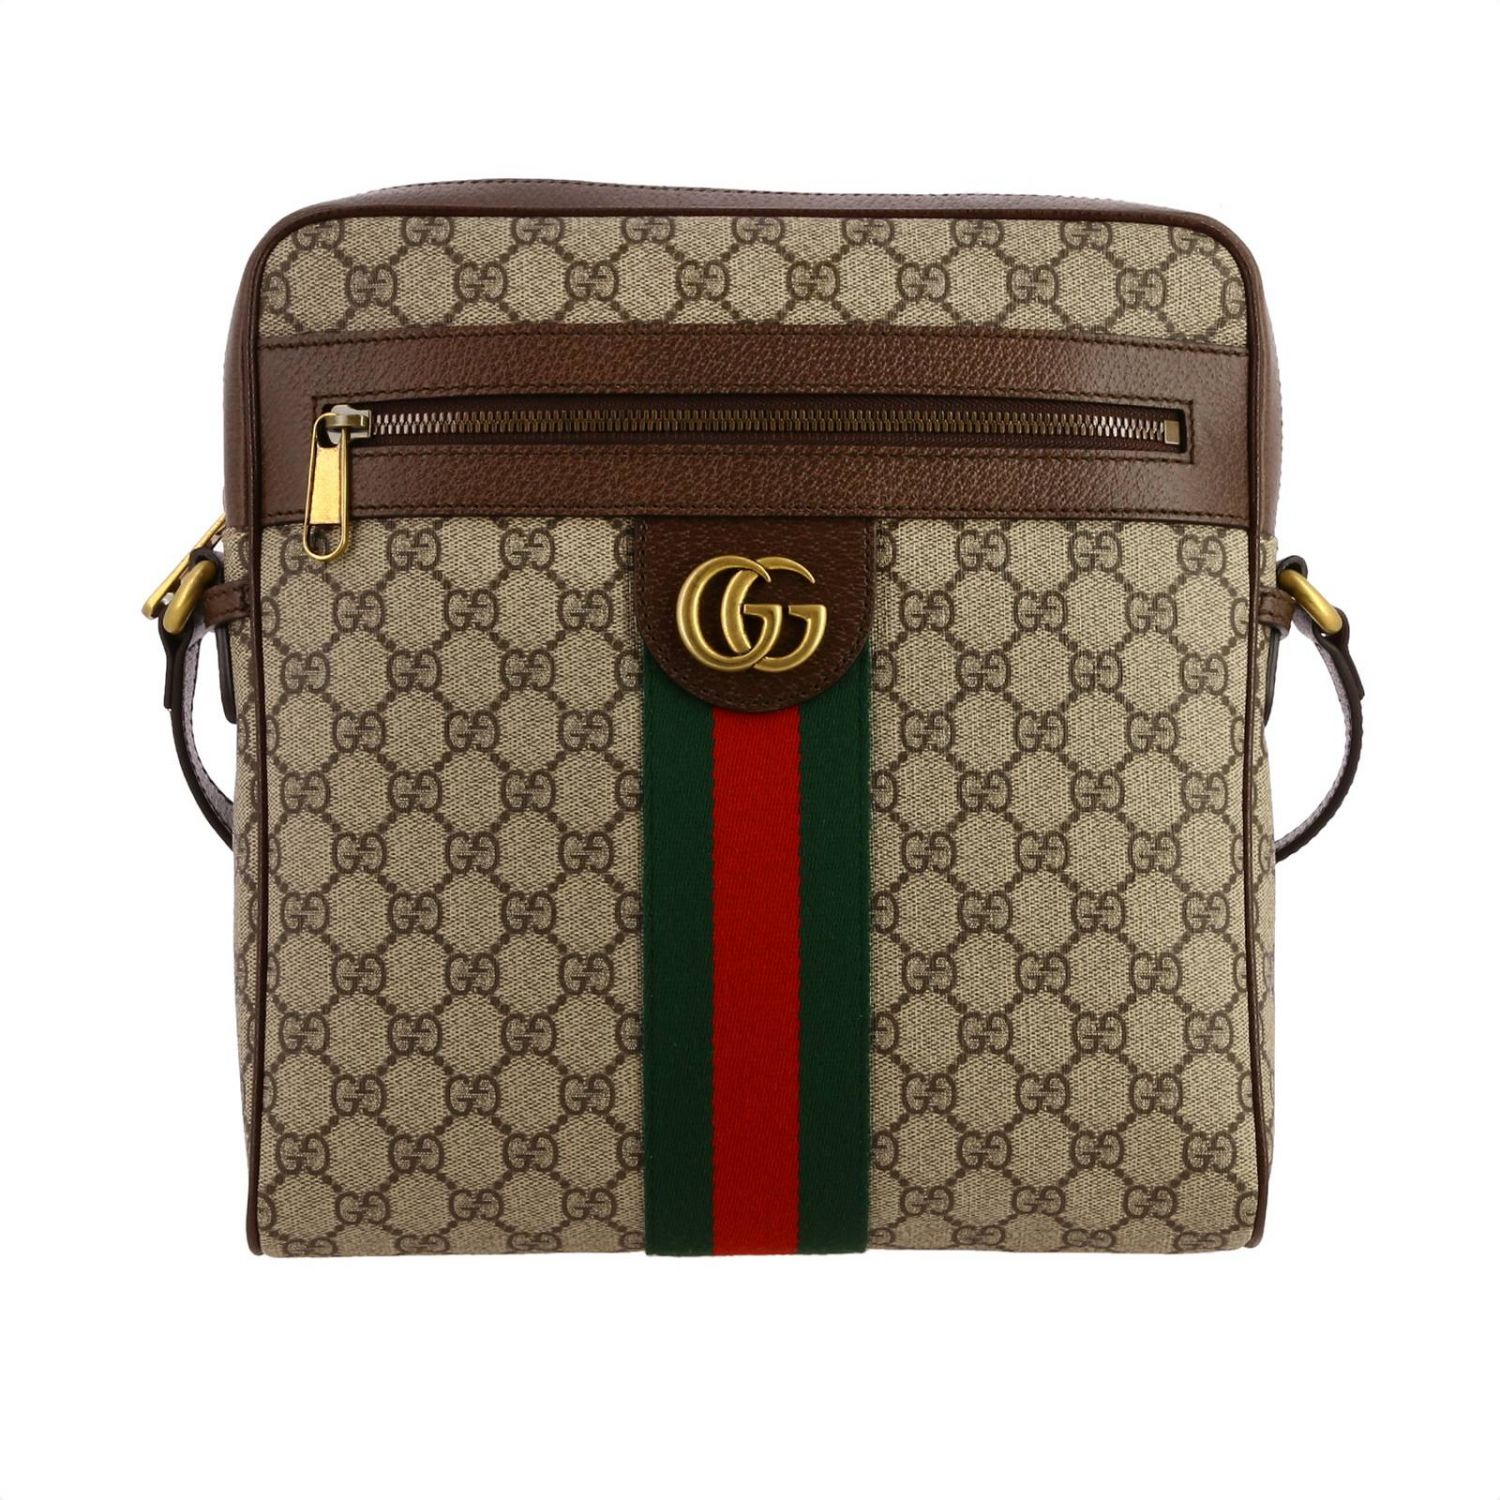 Ophidia shoulder bag in GG Supreme Gucci leather with Web band beige 1